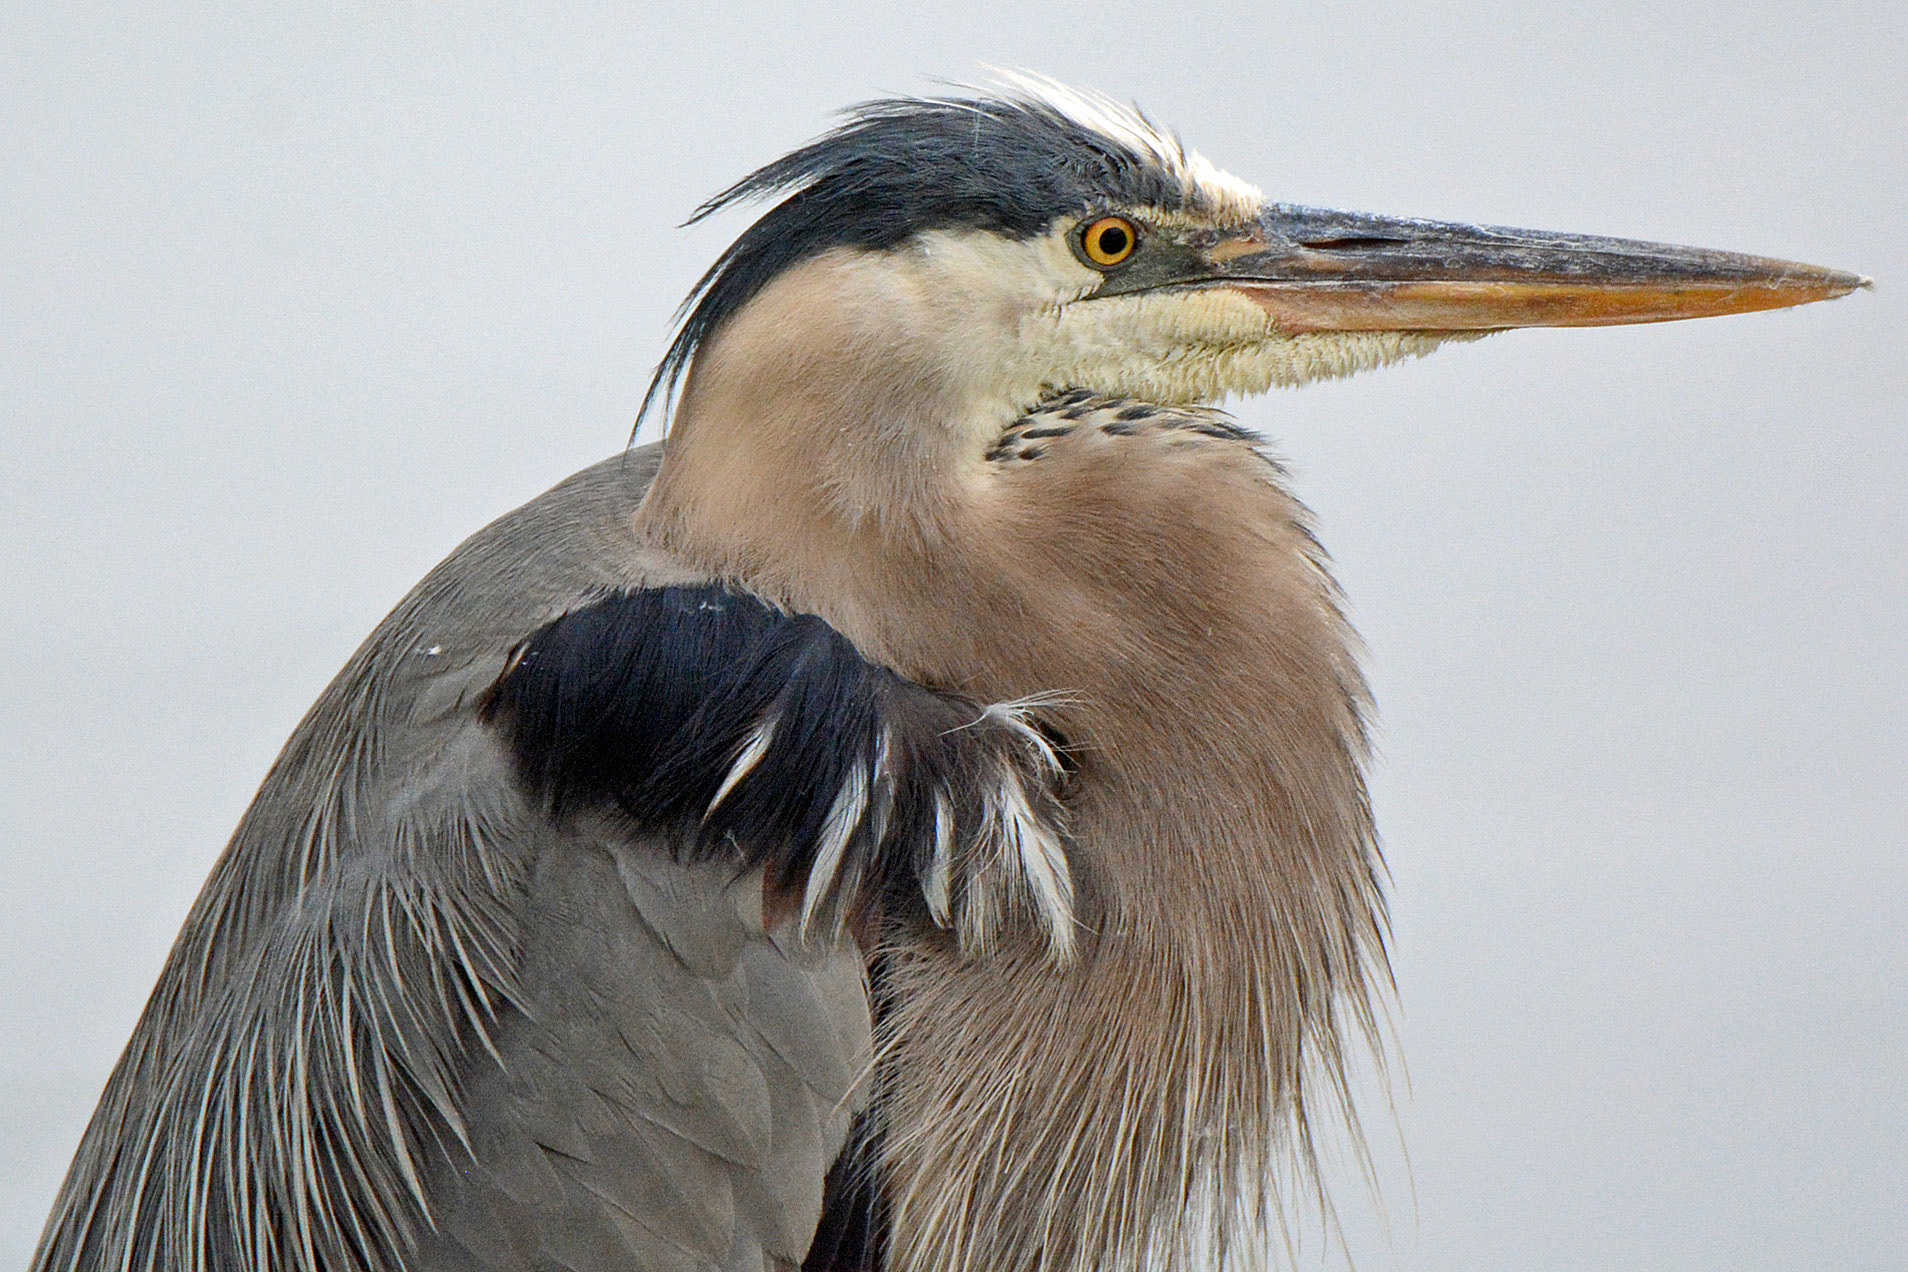 GBH Sharpened